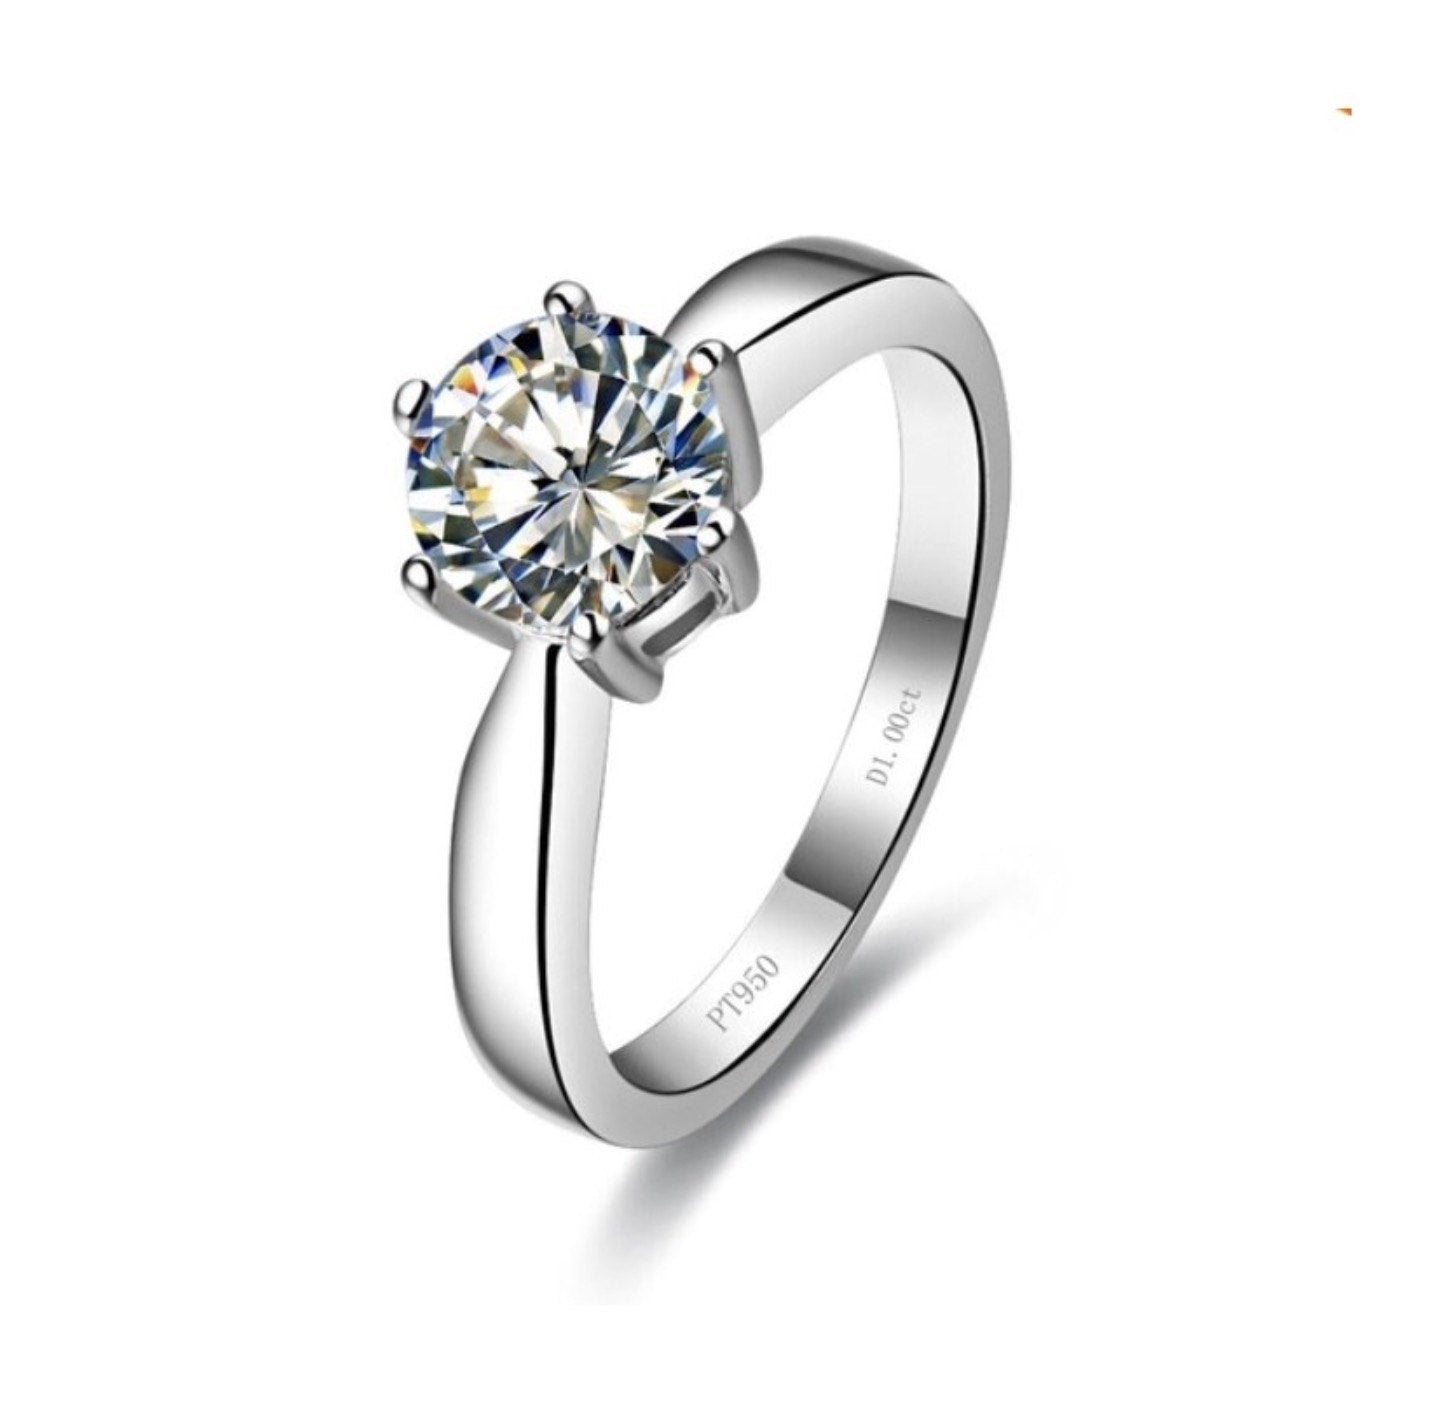 Simulated Engagement Ring 1 carat